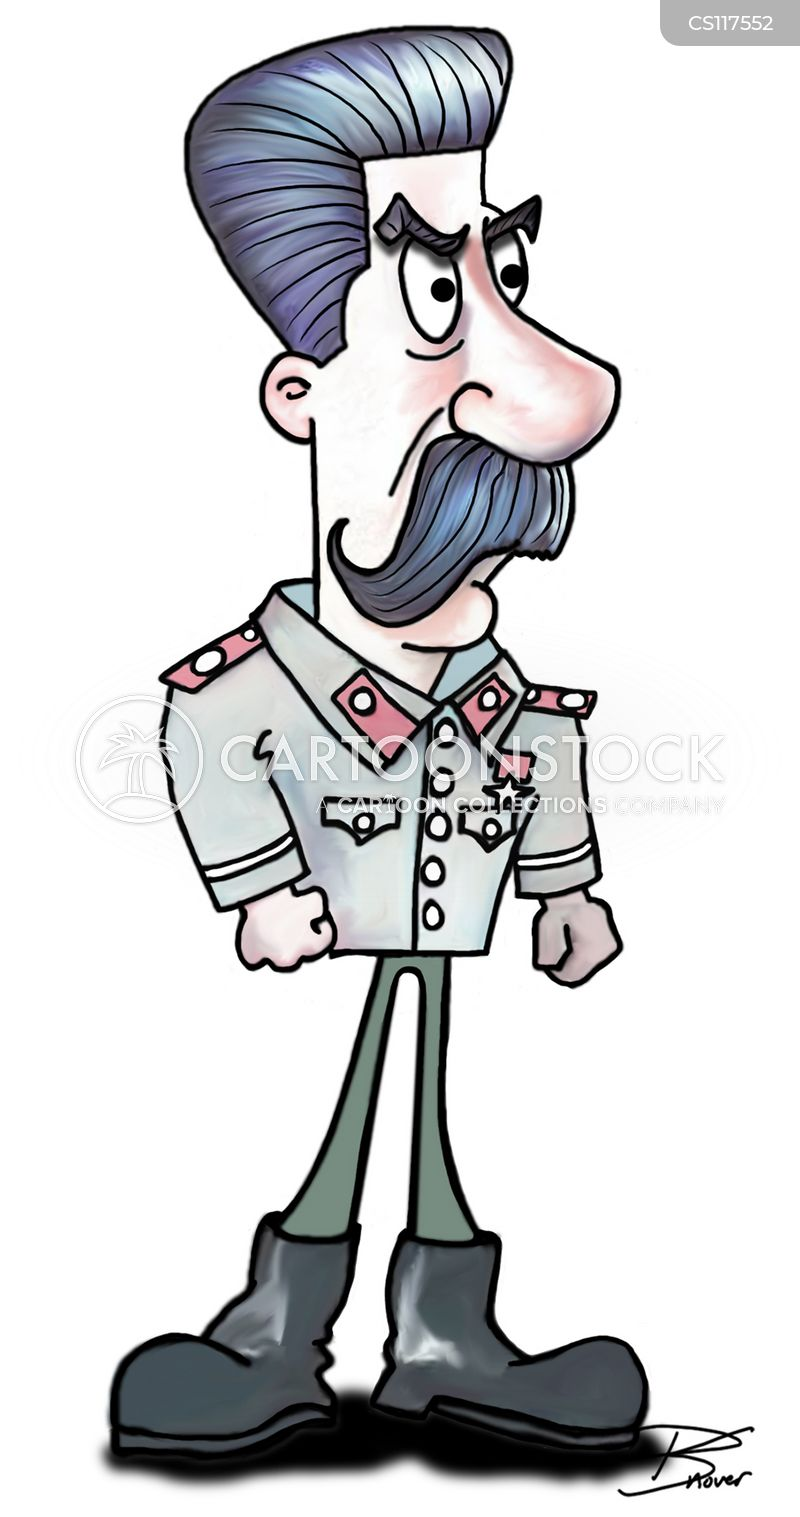 Stalin Cartoons And Comics Funny Pictures From Cartoonstock